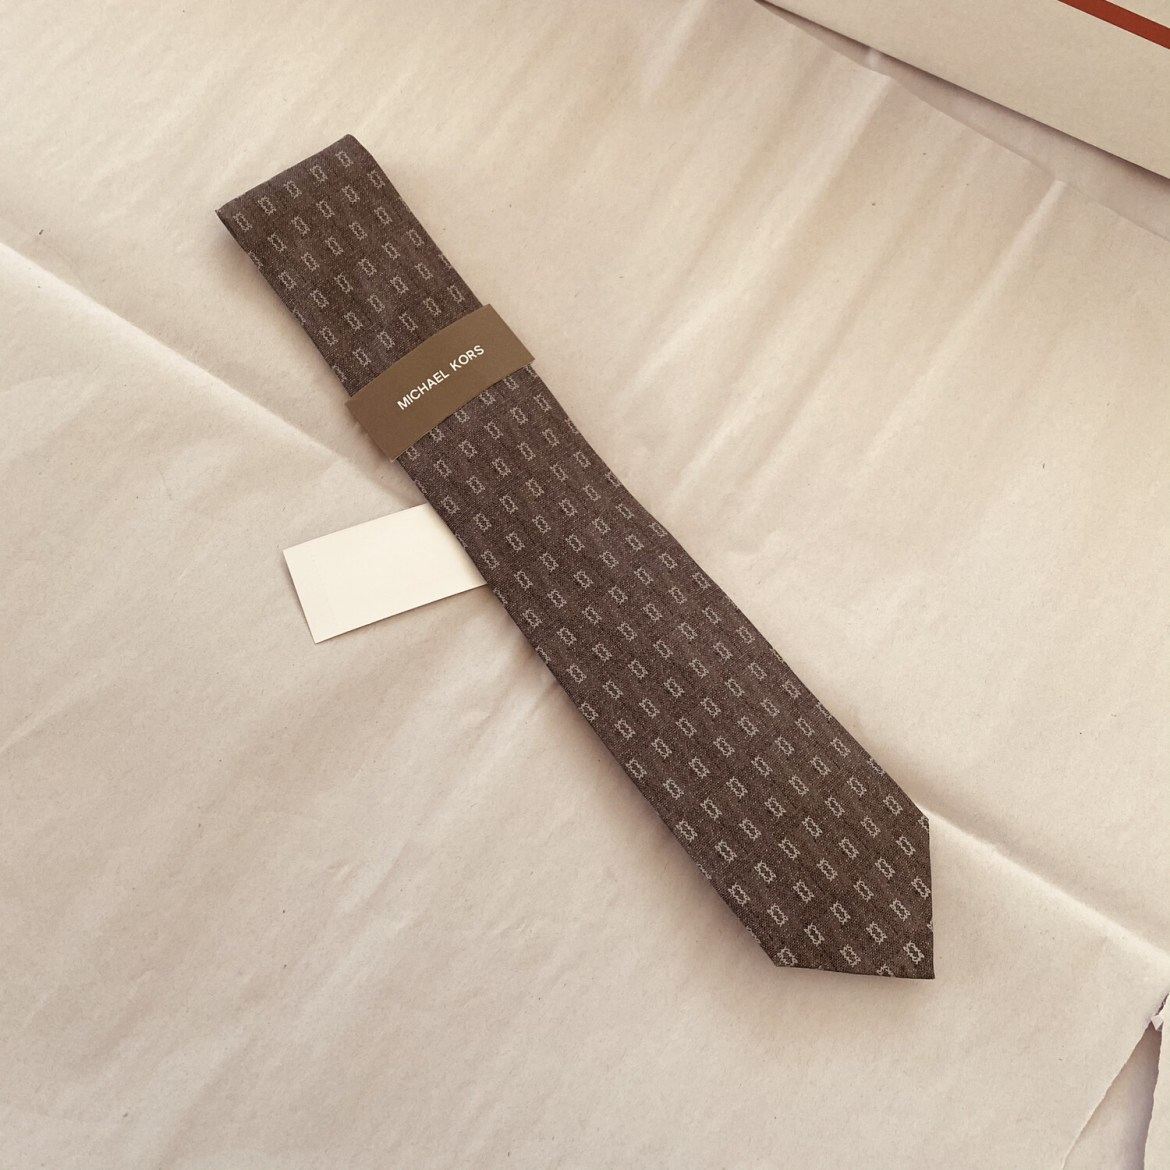 Michael Kors Silk Silver and Grey Necktie NWT Original Retail $69.50 FREE SHIPPING A#448